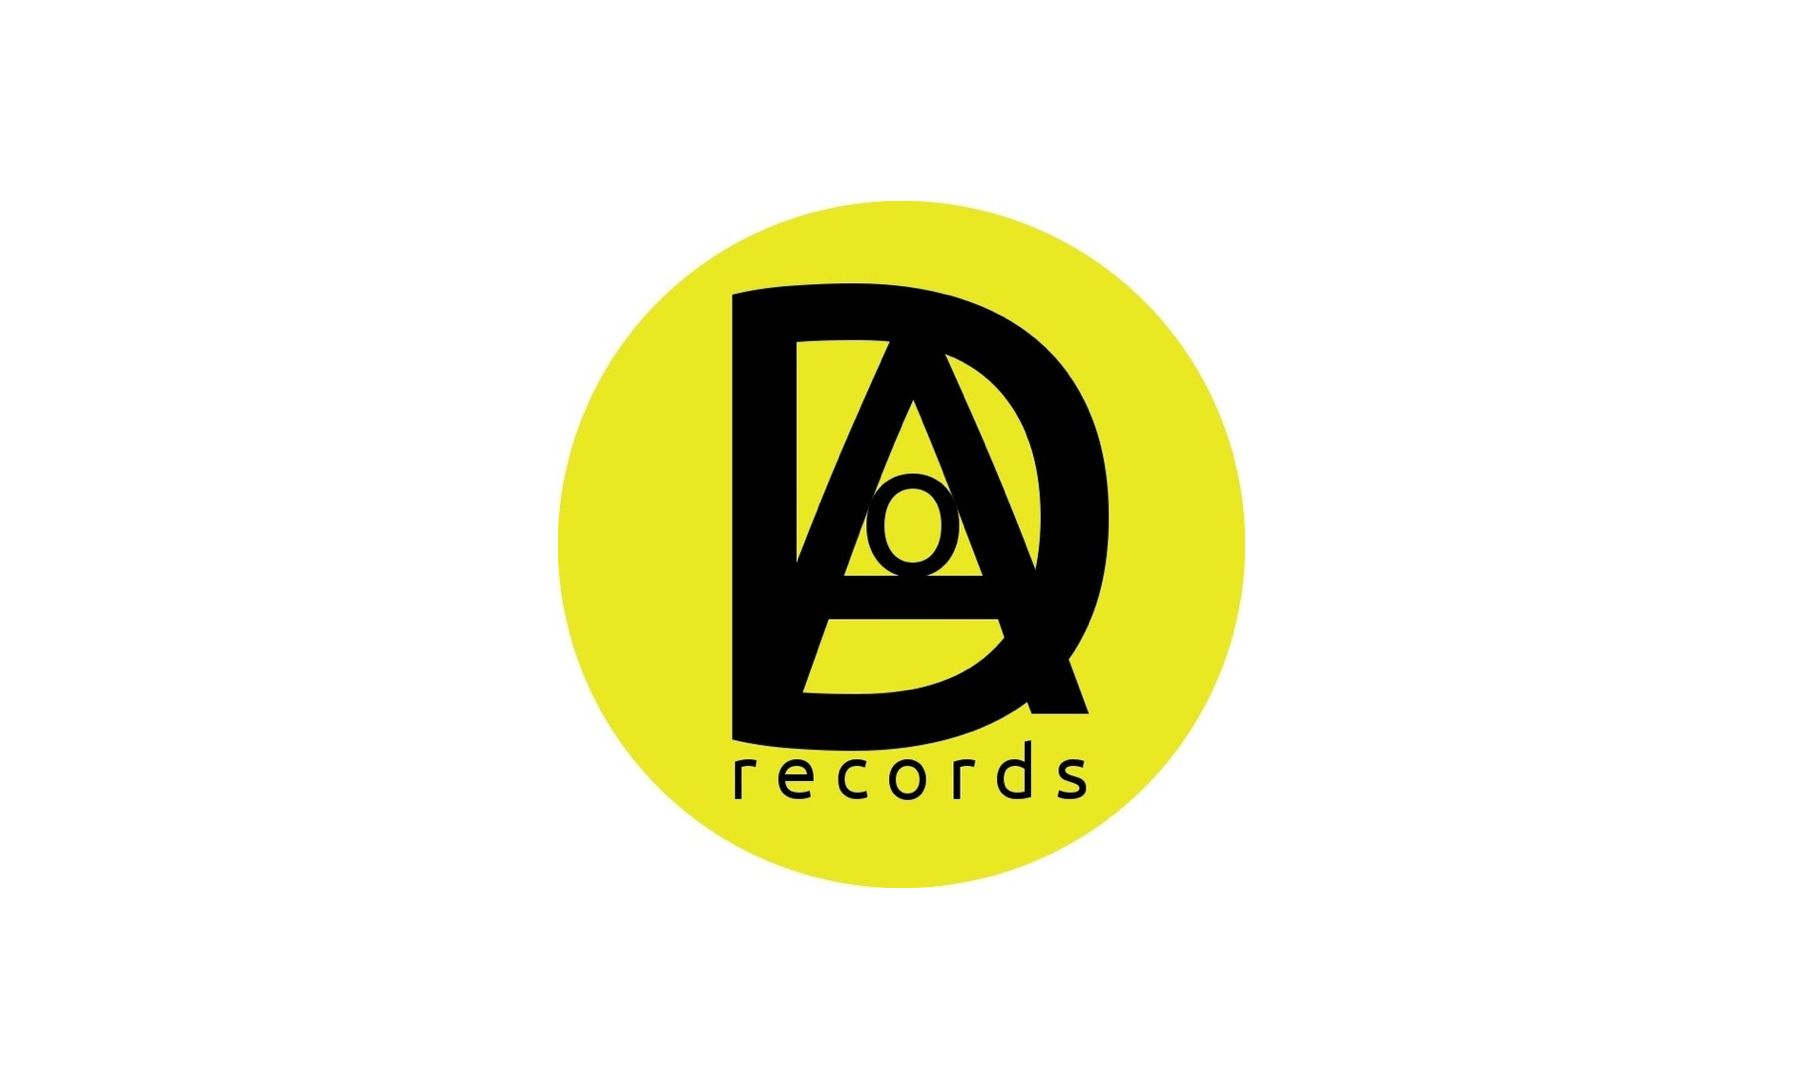 DAOrecords - Reinventing the Record Label